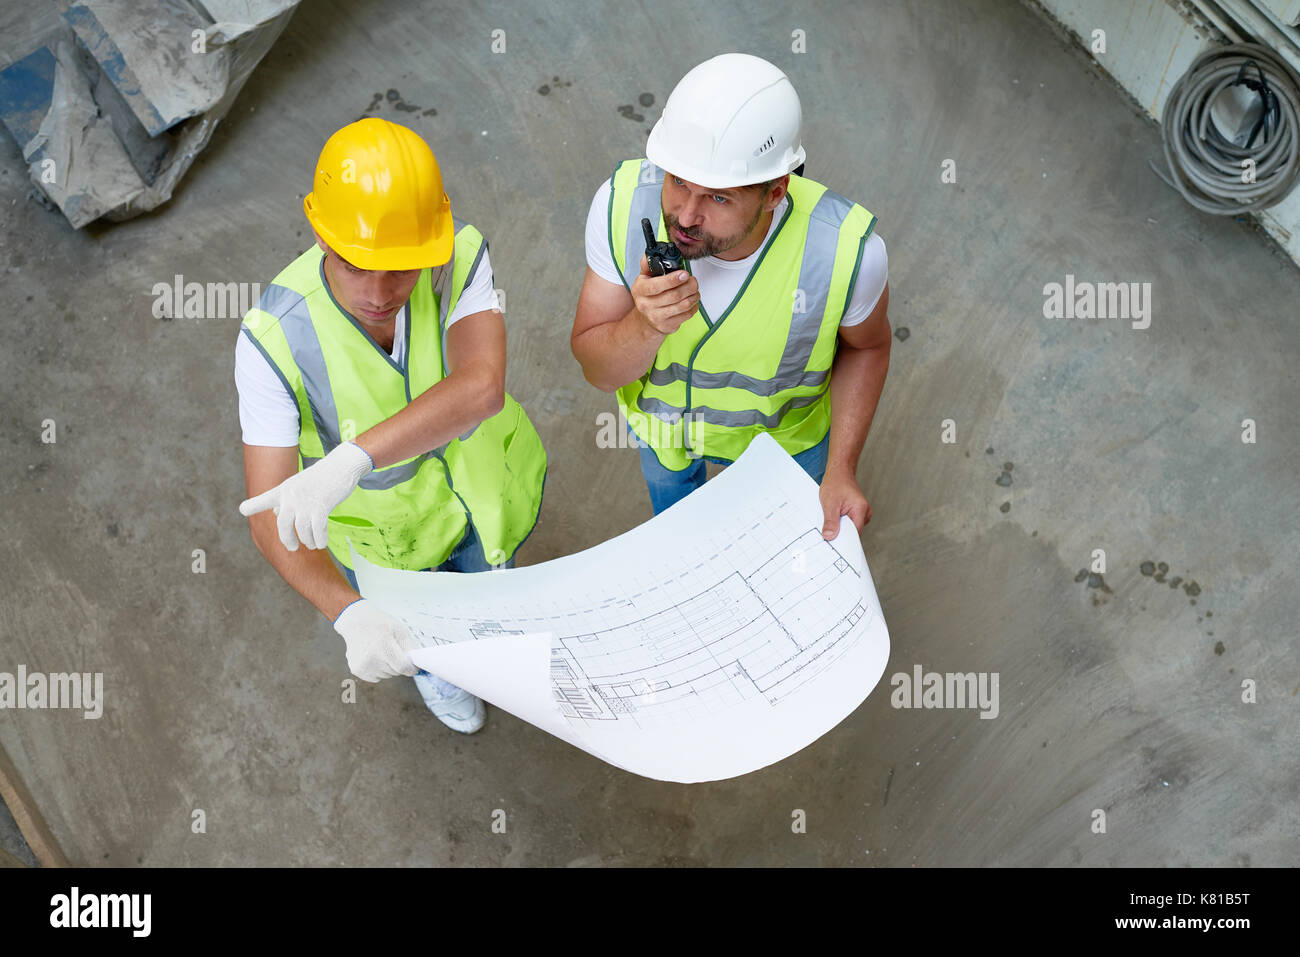 Construction Workers Wrapped up in Discussion - Stock Image